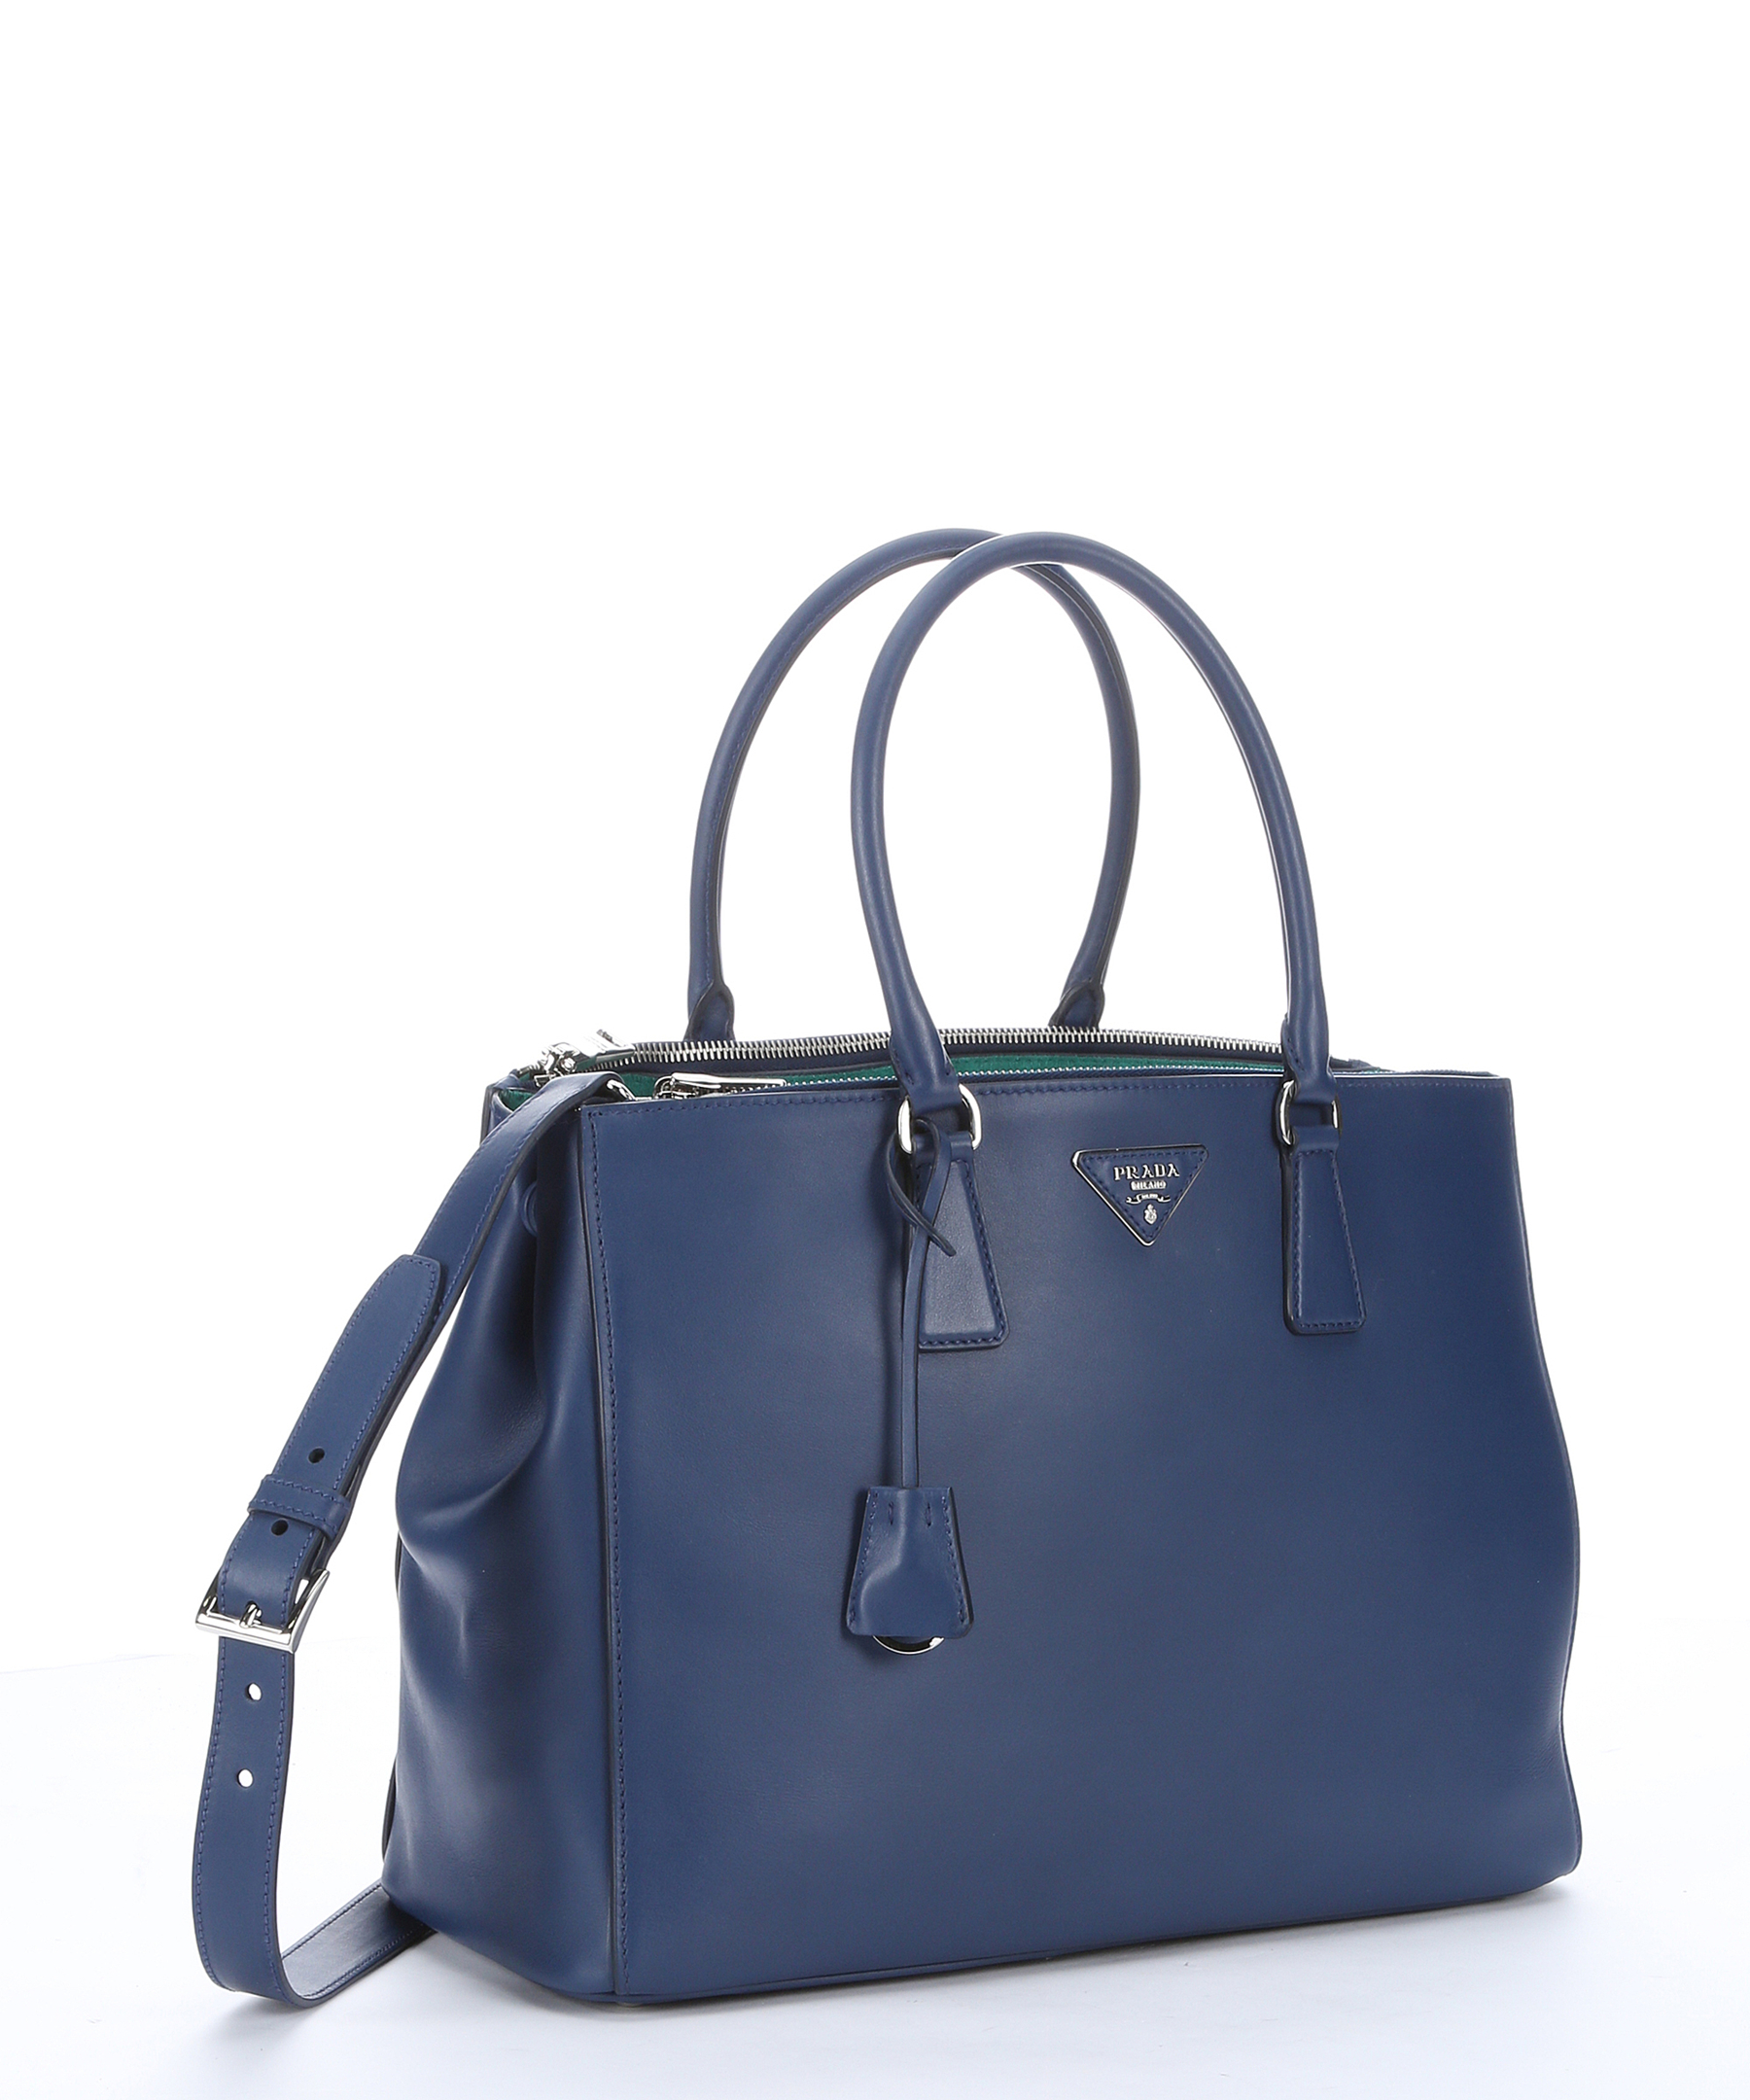 9f2c95421da4 ... leather tote cornflower blueprada bags outlet 4b4ad 24230 good lyst prada  cornflower blue and absinthe calfskin city 44266 938a5 ...